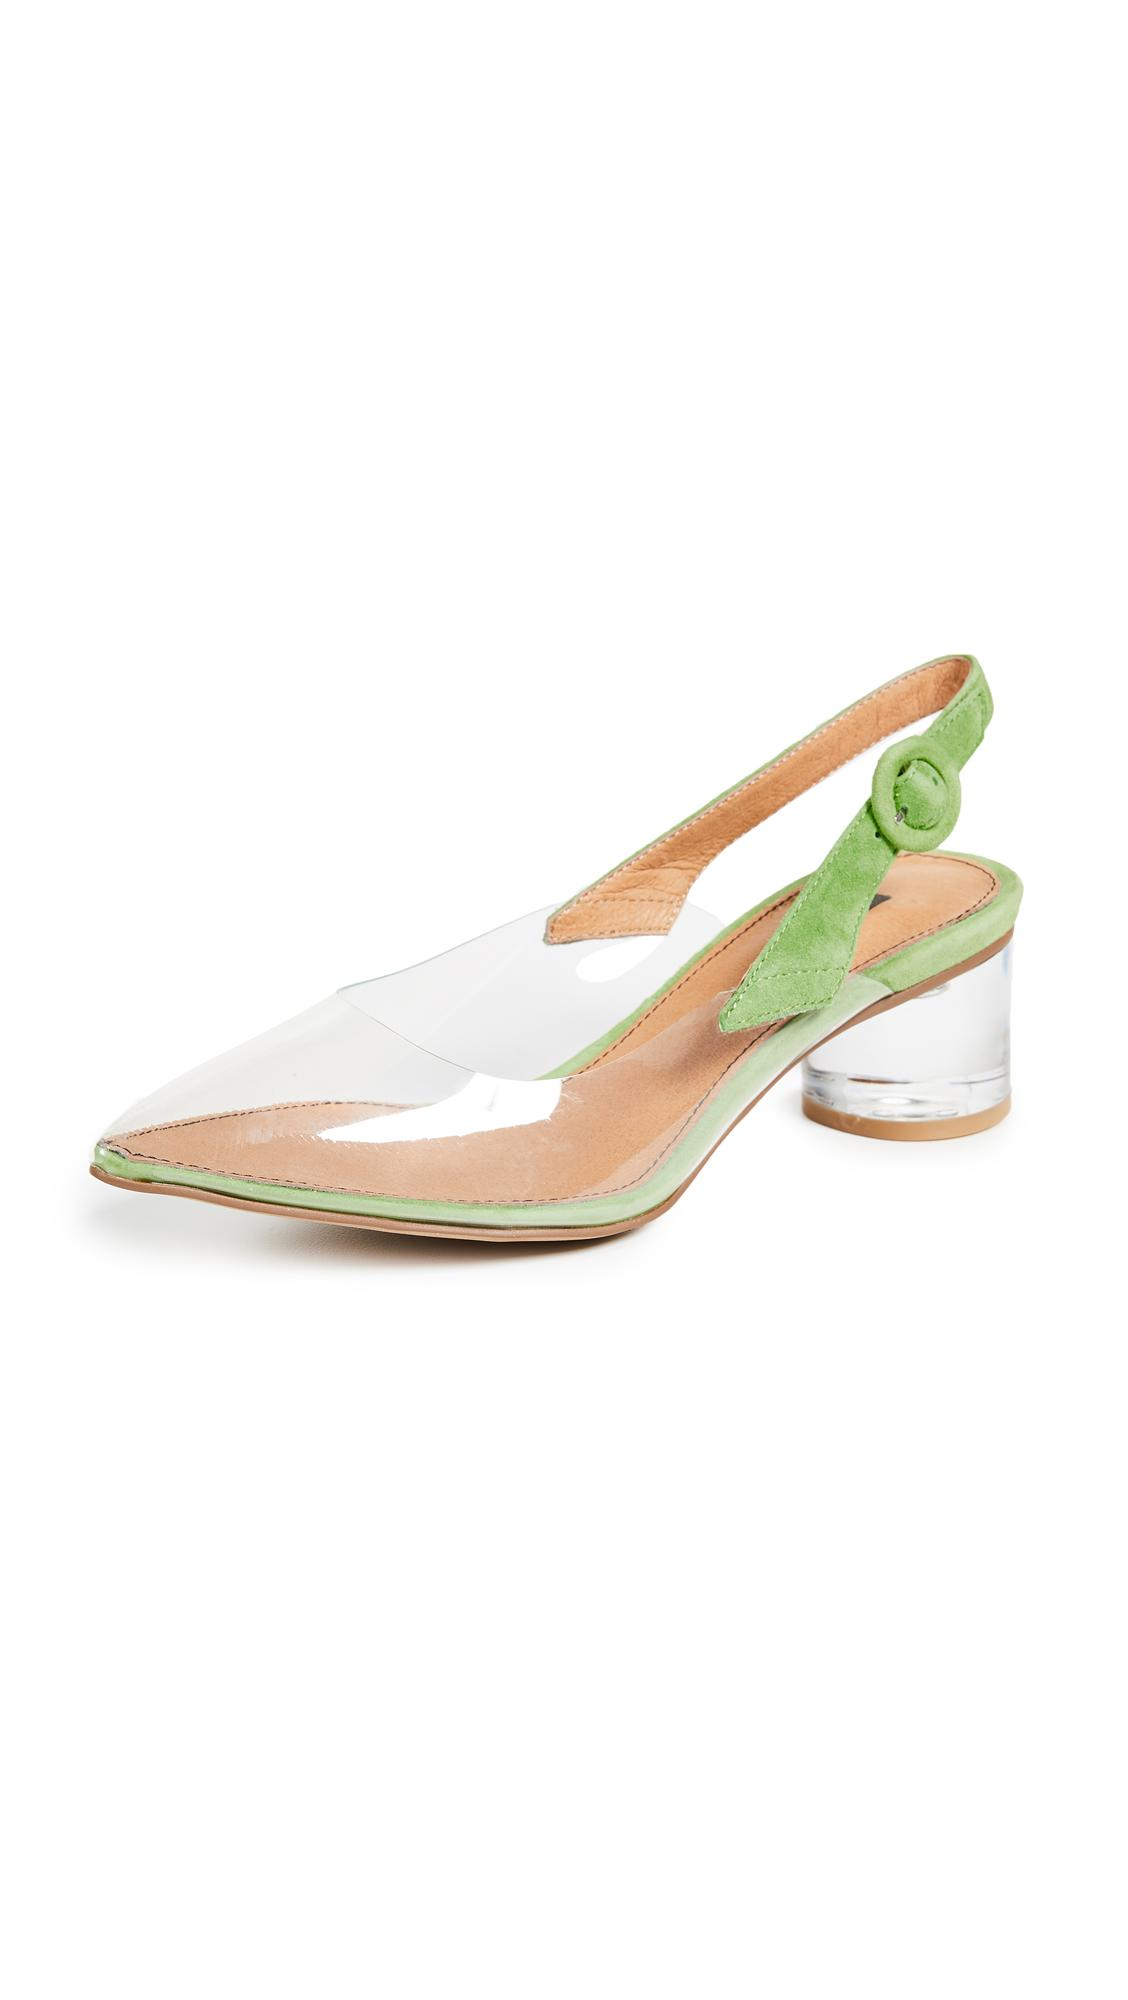 fef46ebe74 Matiko Zuma Block Heel Pumps In Clear/Green | ModeSens